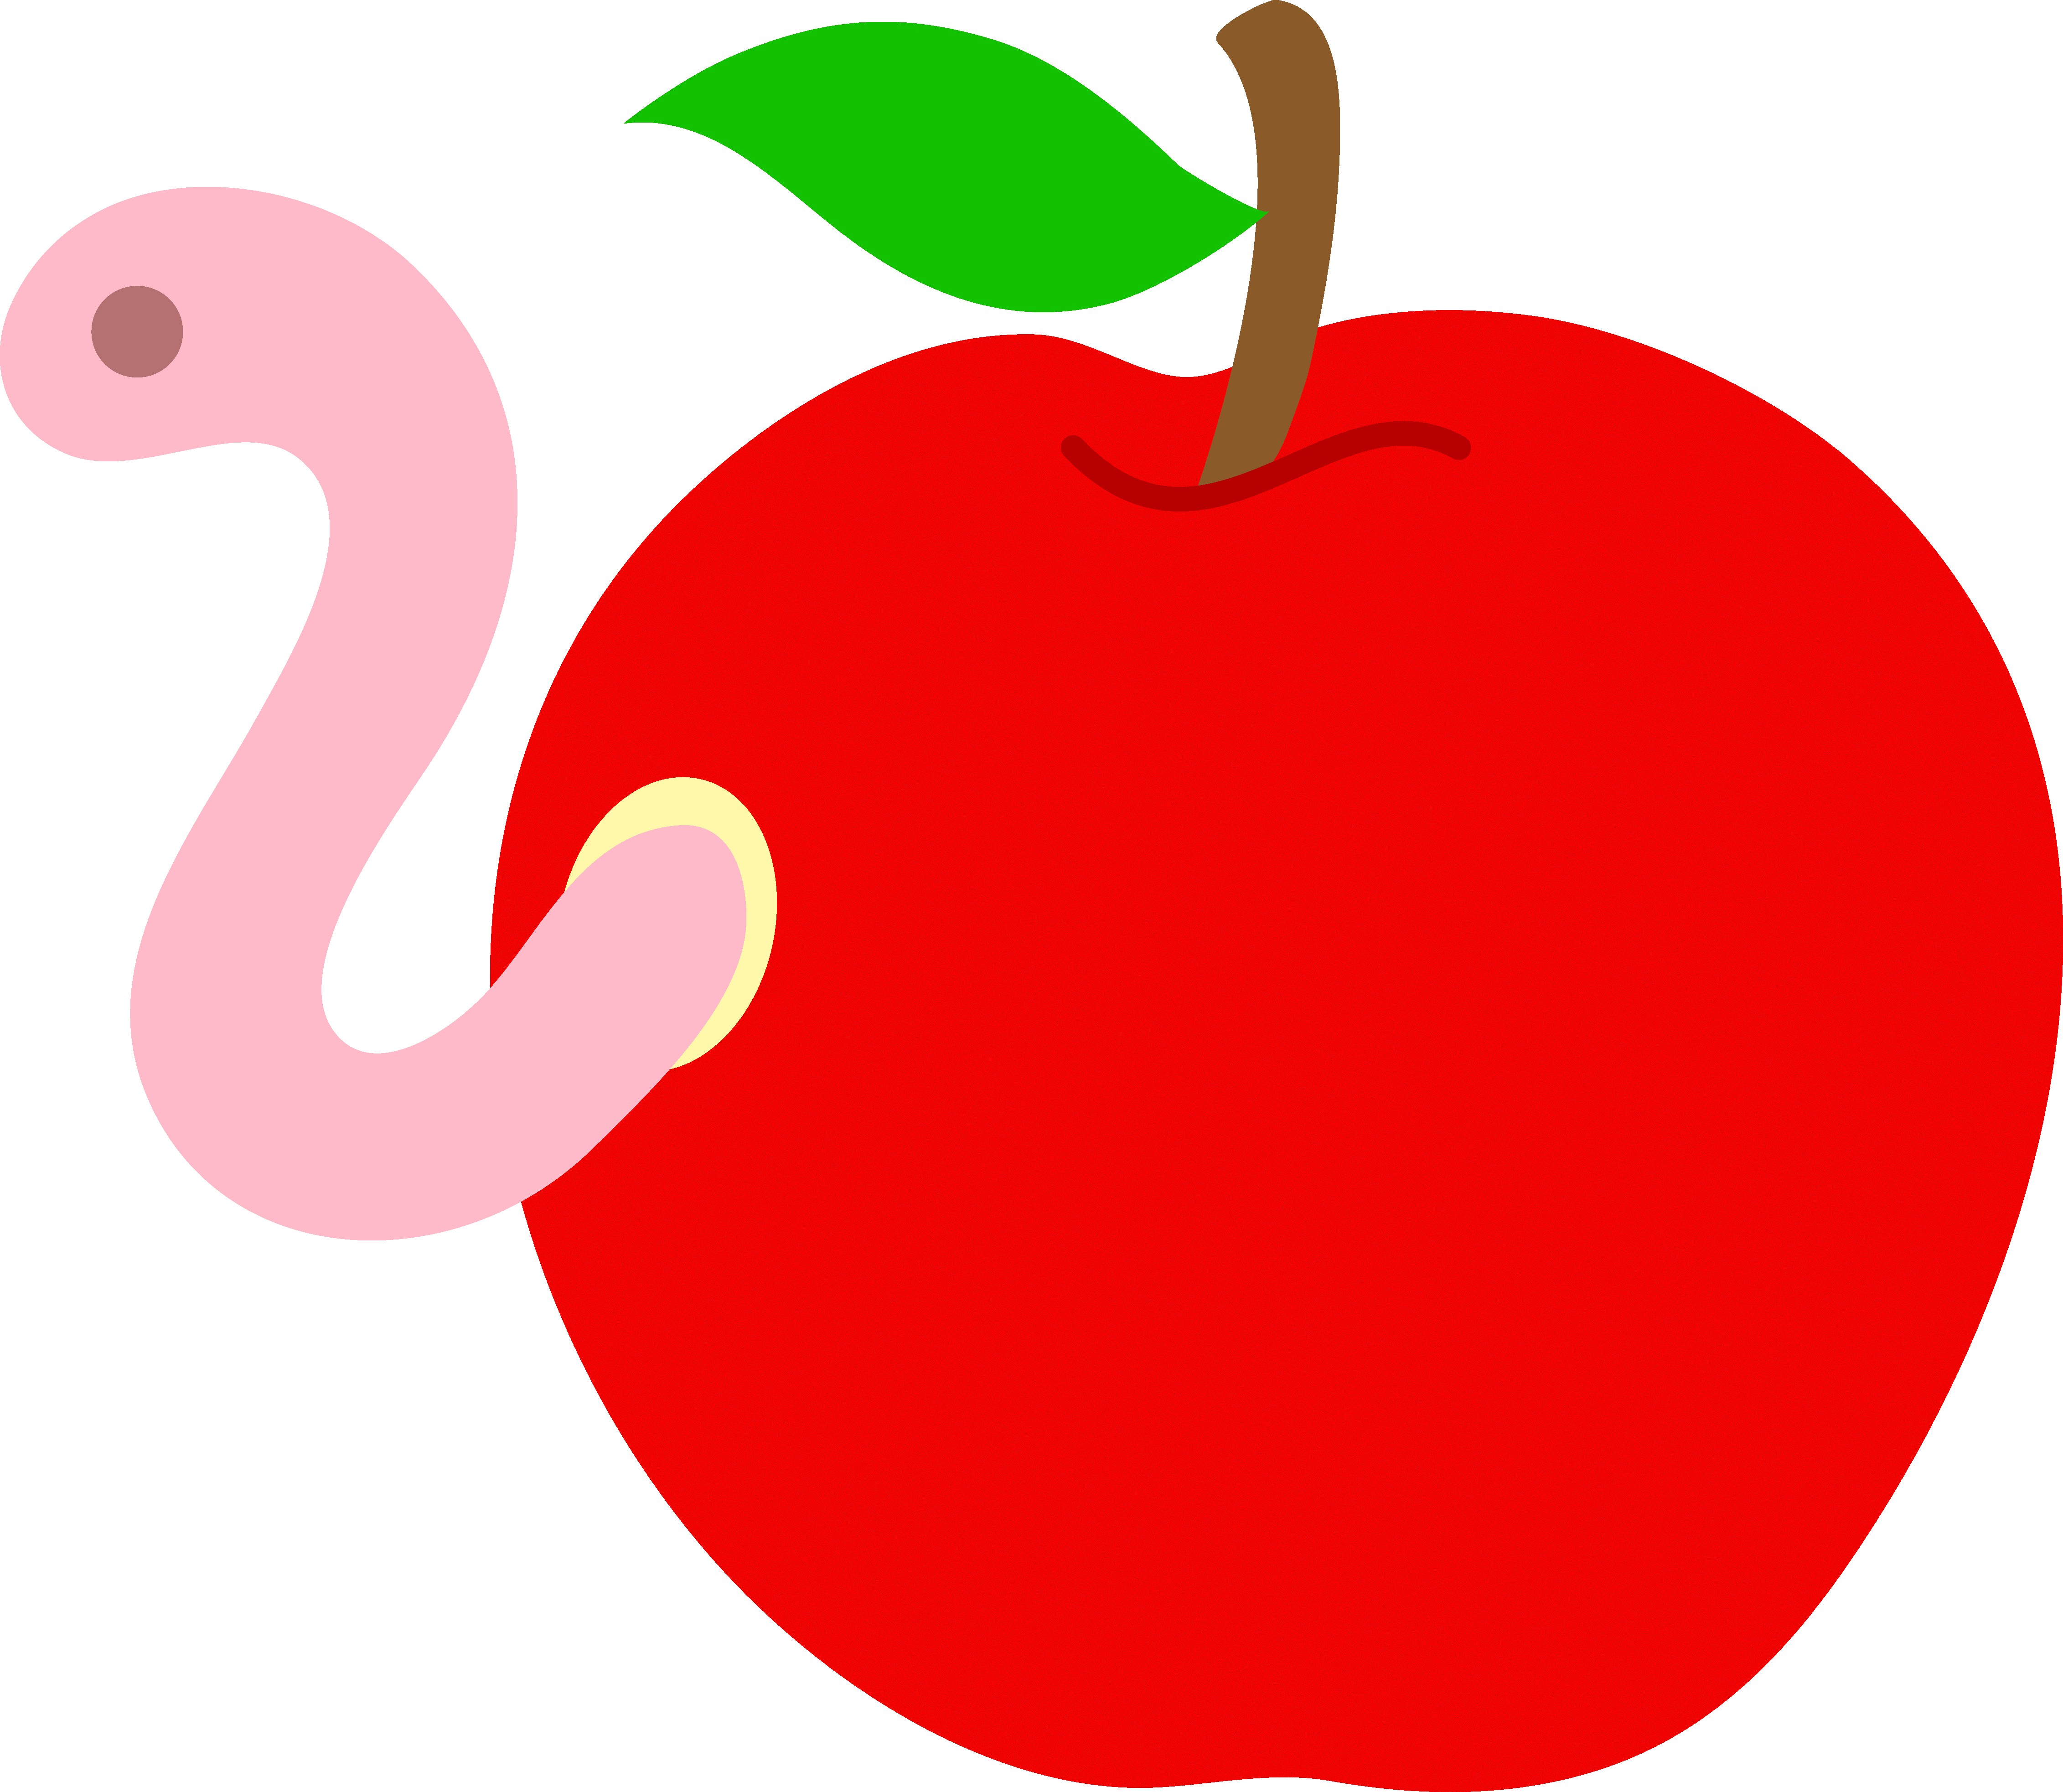 Heart cliparts zone apple. Worm clipart green thing